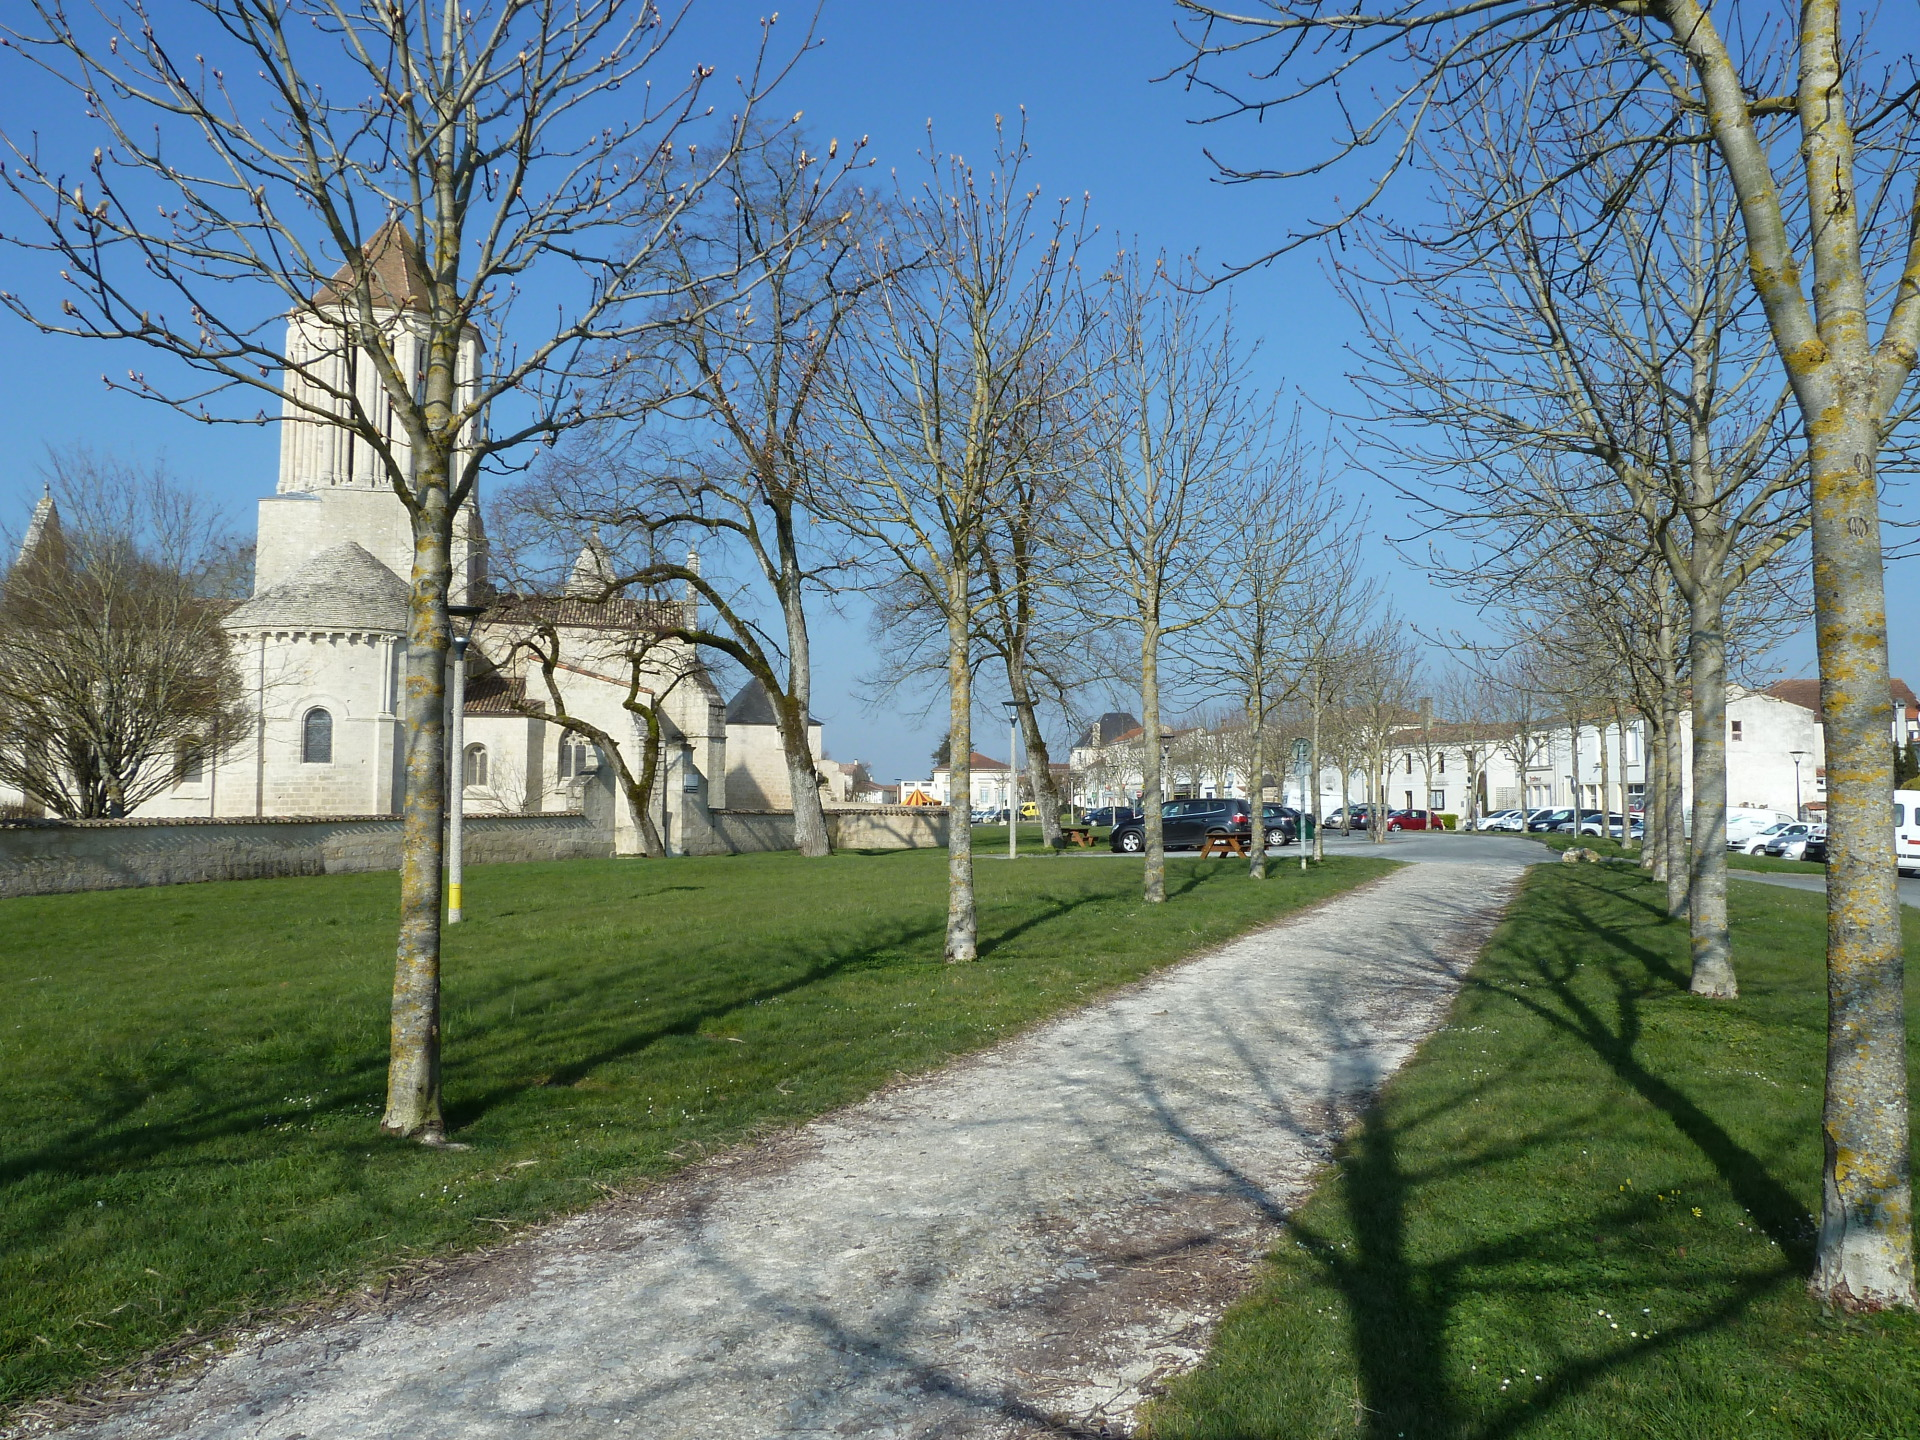 Our walk from the house into the town centre past the eglise,